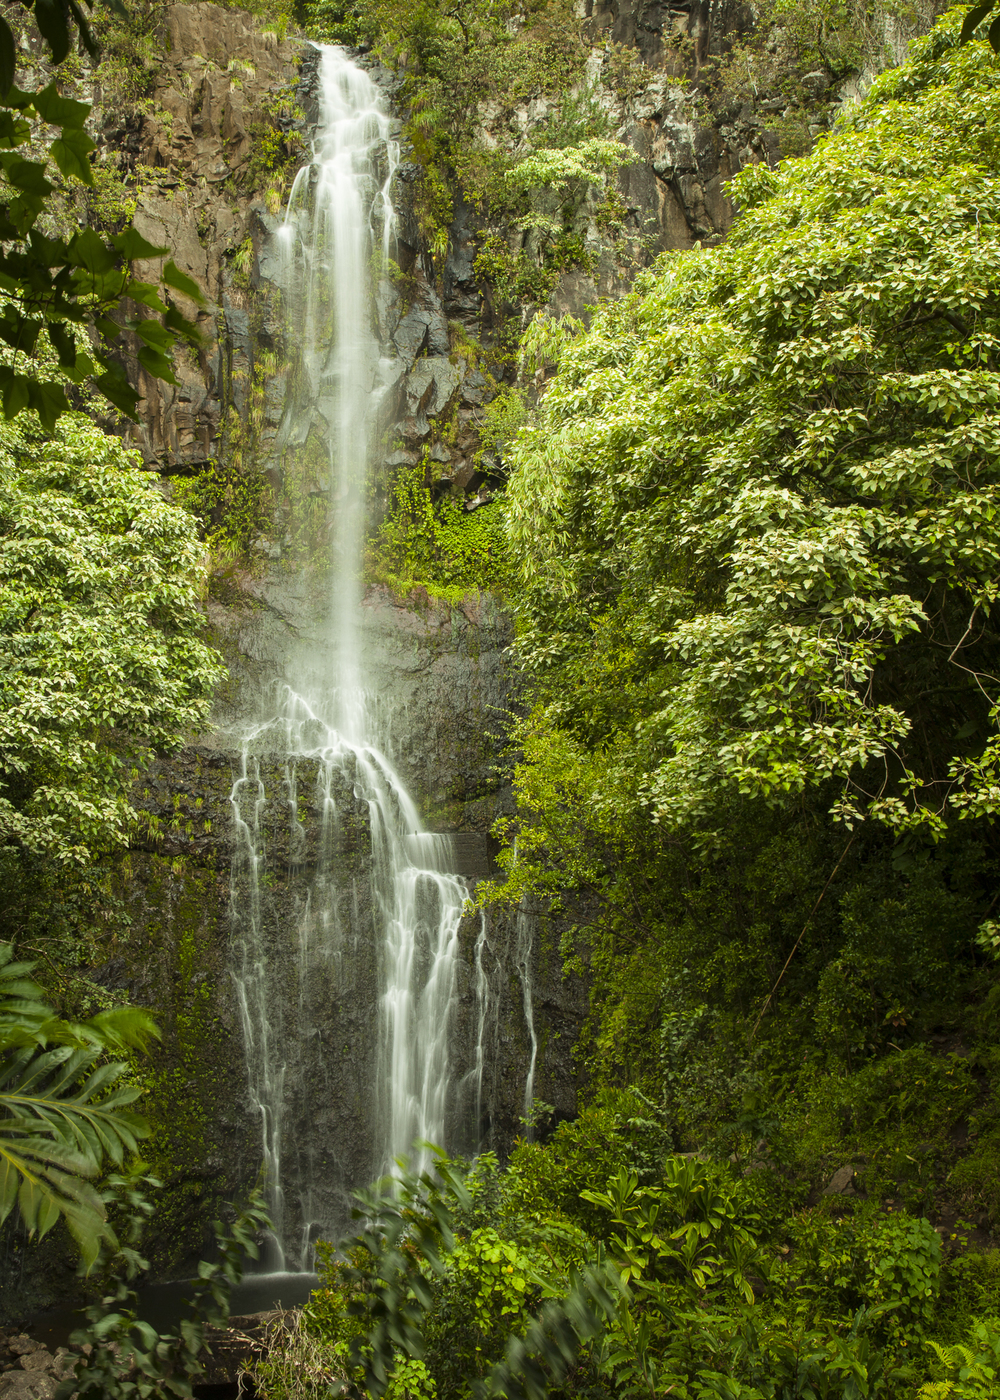 All along the road to Hana, there are waterfalls that you can stop to see.